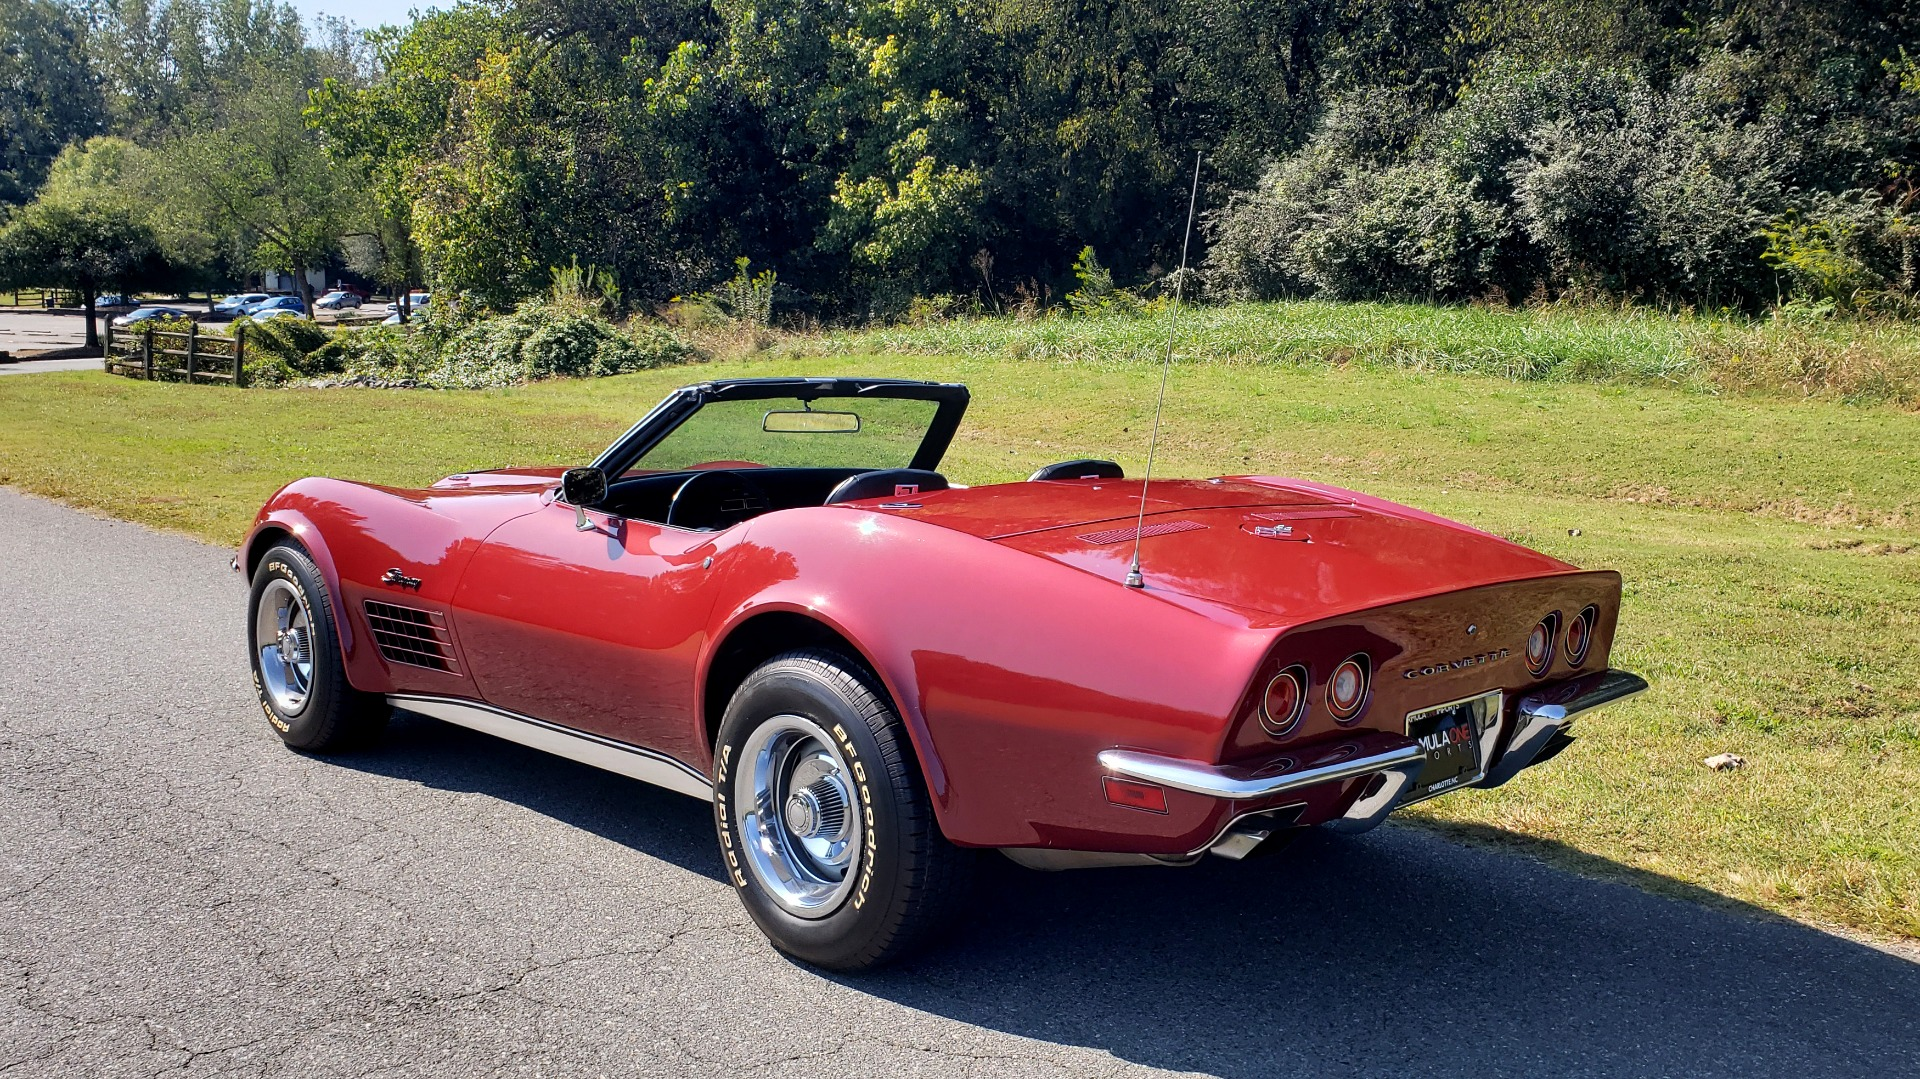 Used 1970 Chevrolet CORVETTE CONVERTIBLE / 454CI V8 / AUTO / NEW BLACK TOP / NUMBERS MATCH for sale $50,499 at Formula Imports in Charlotte NC 28227 6